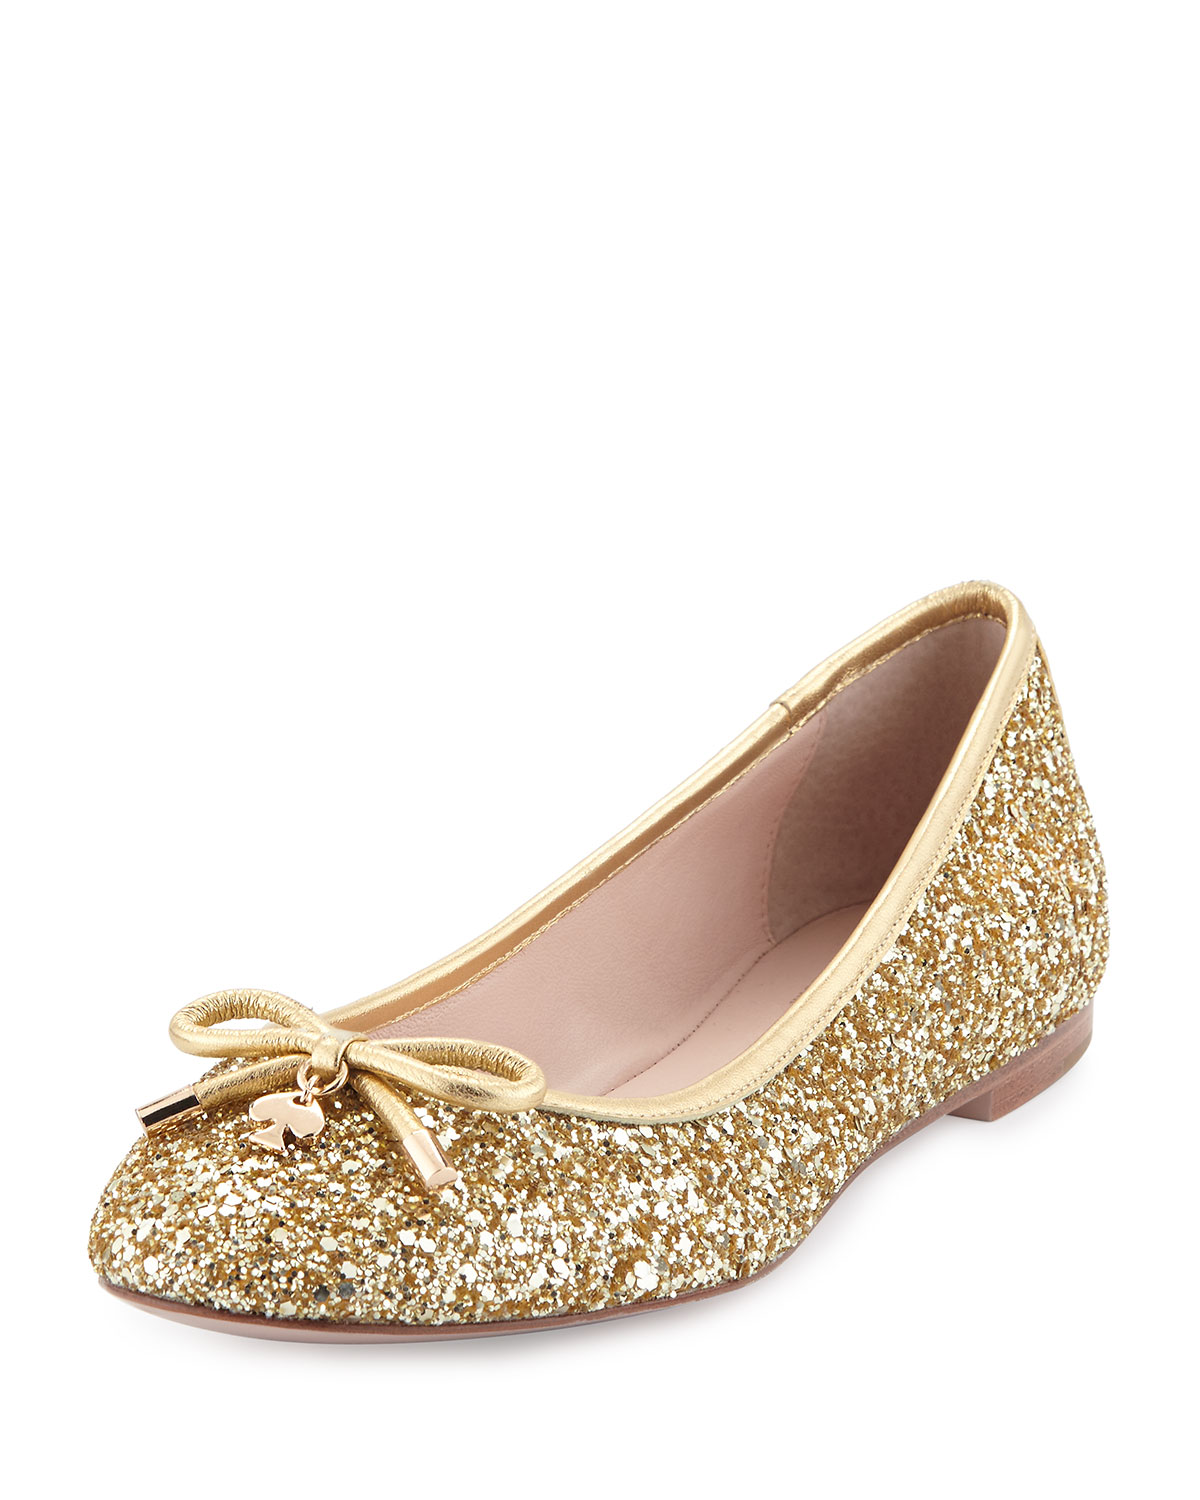 65373fa0de4 kate spade new york willa glitter Ballet Flat